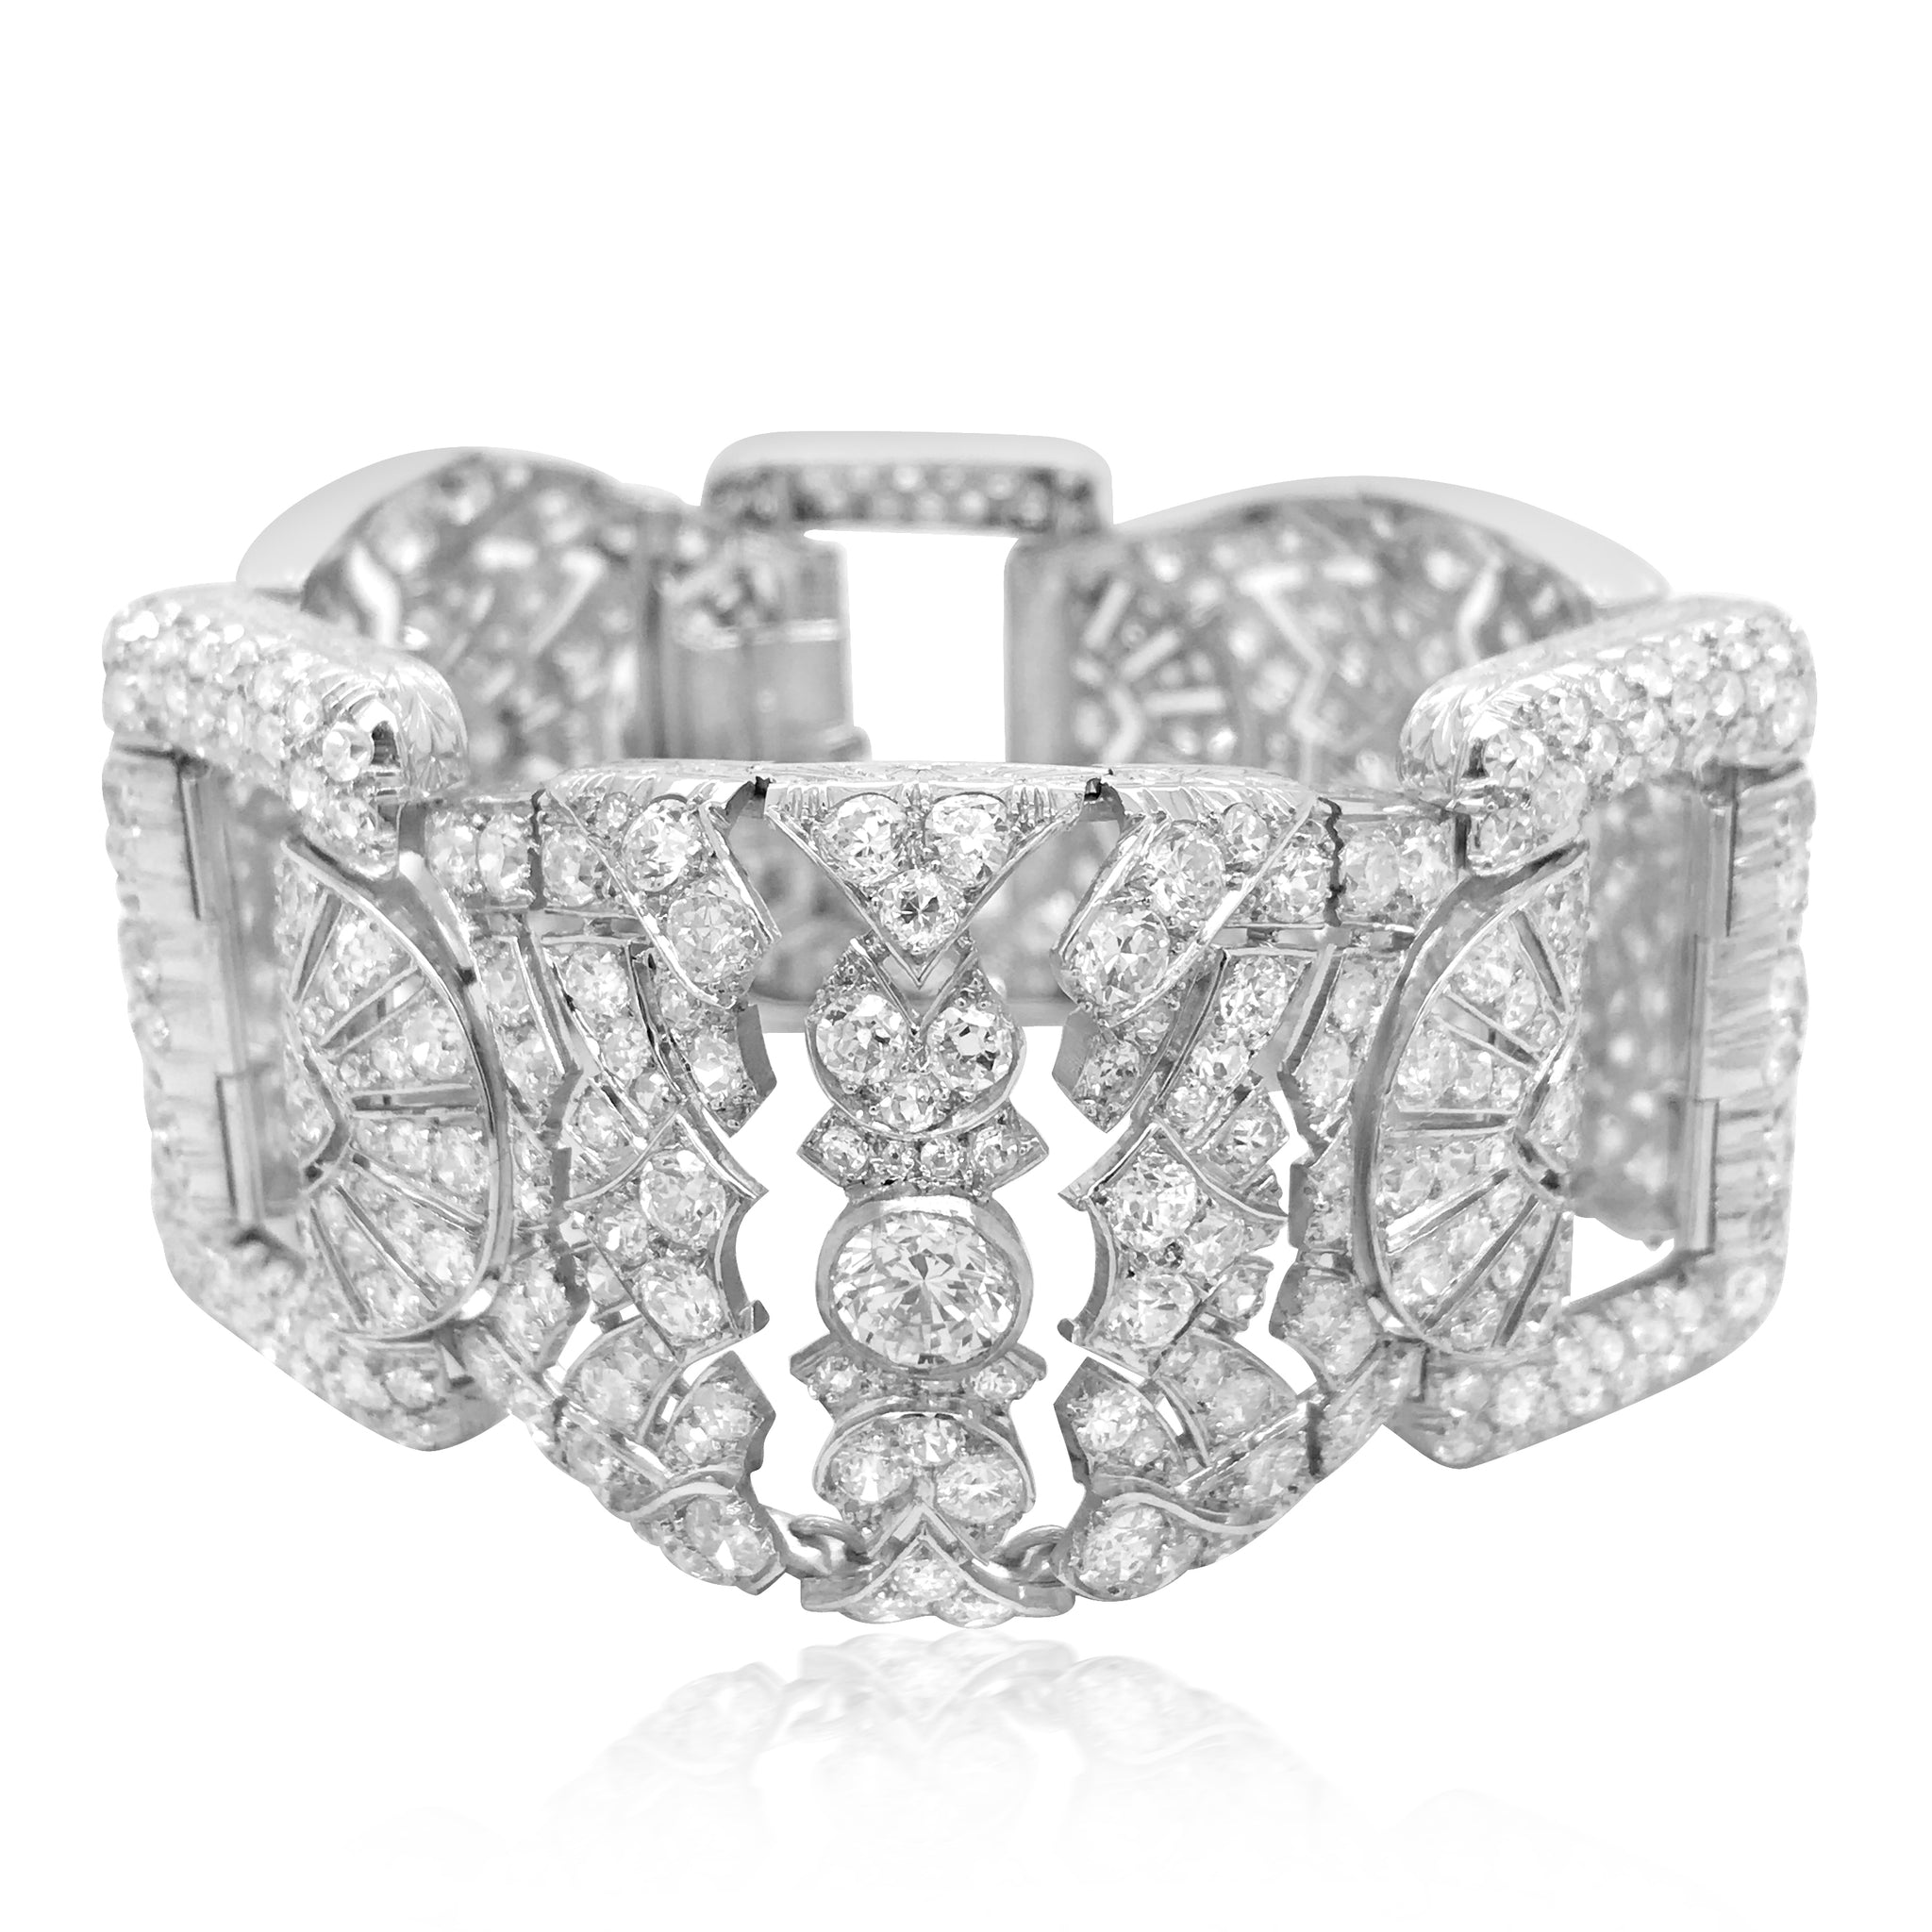 Platinum Diamond Bracelet - Lueur Jewelry